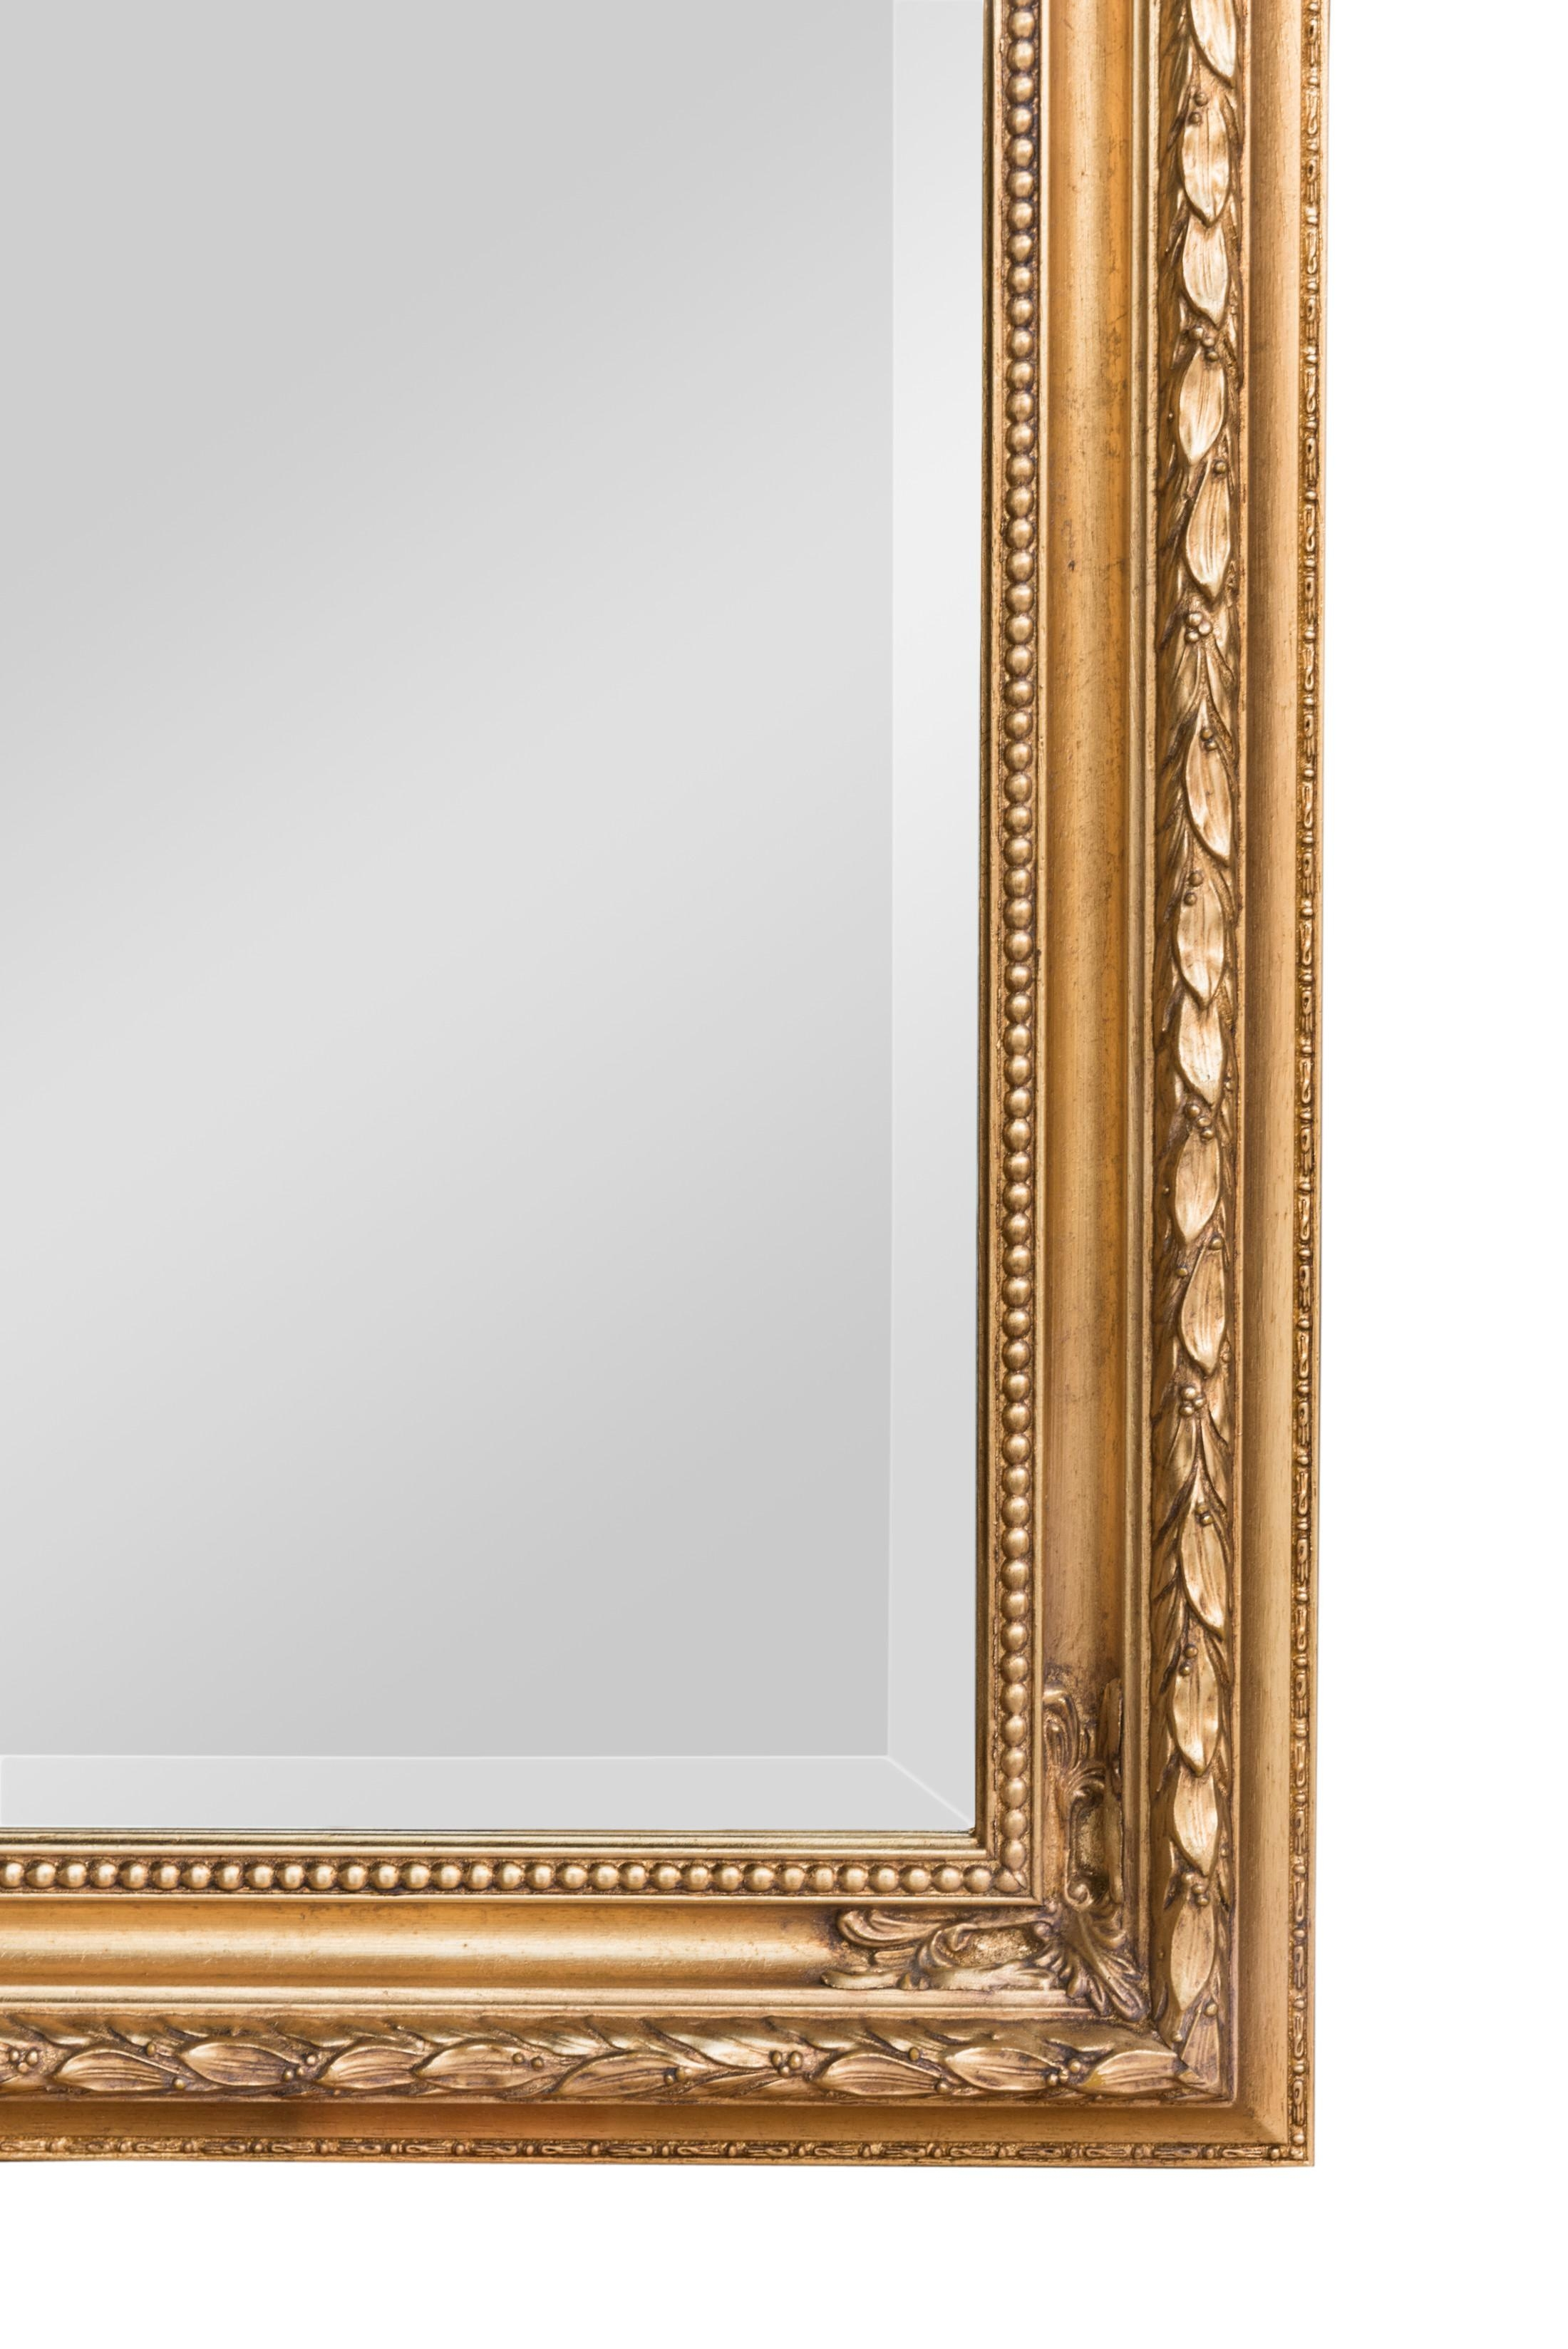 Gold Baroque Mirror | Bedroom Mirrors For Sale – Panfili Mirrors Within Baroque Mirror Gold (Image 18 of 20)